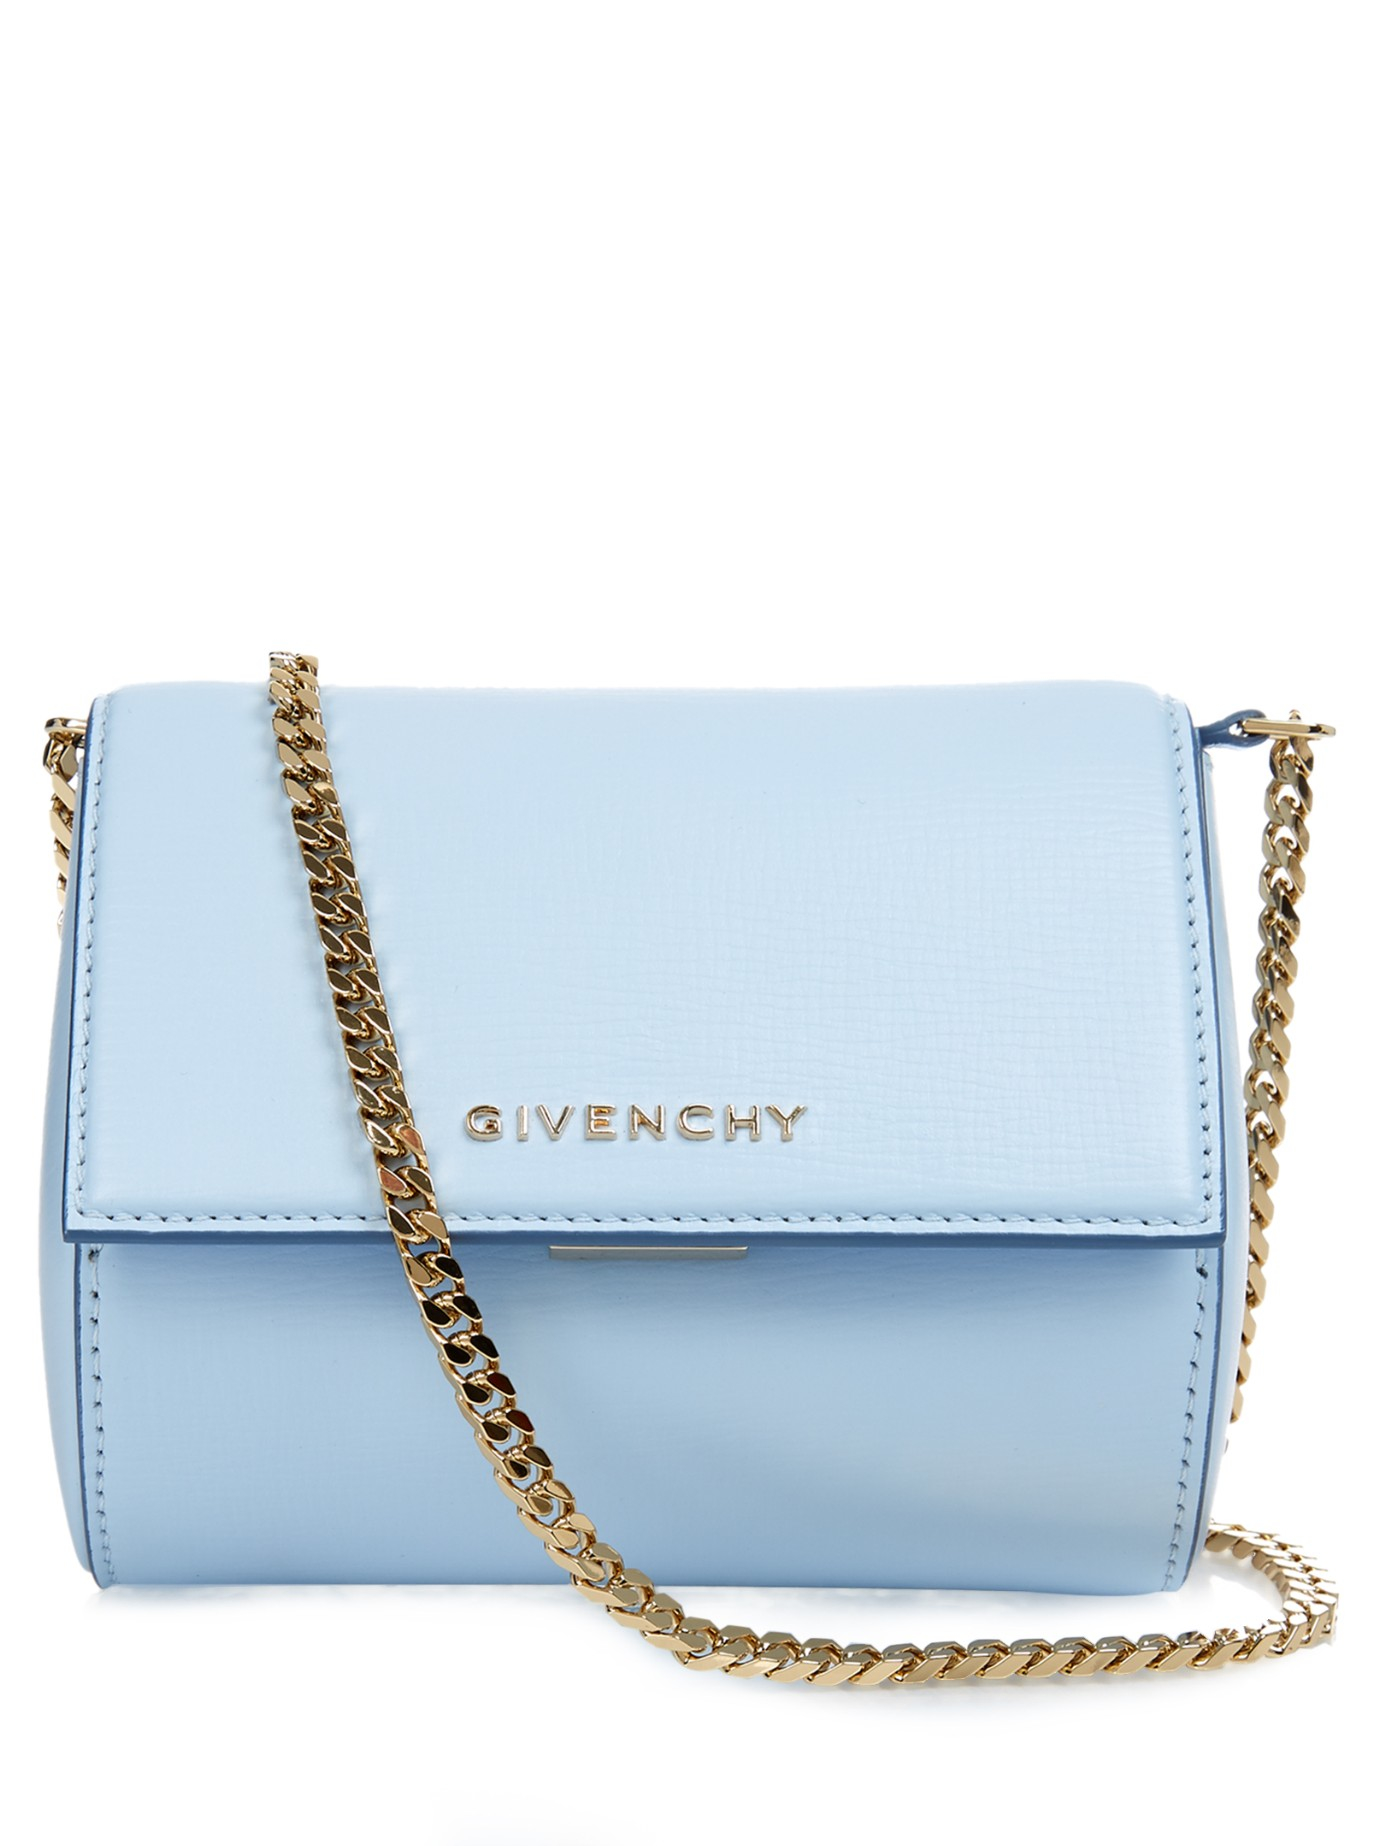 88ba81c0651d Gallery. Previously sold at  MATCHESFASHION.COM · Women s Box Bags Women s  Givenchy Pandora ...